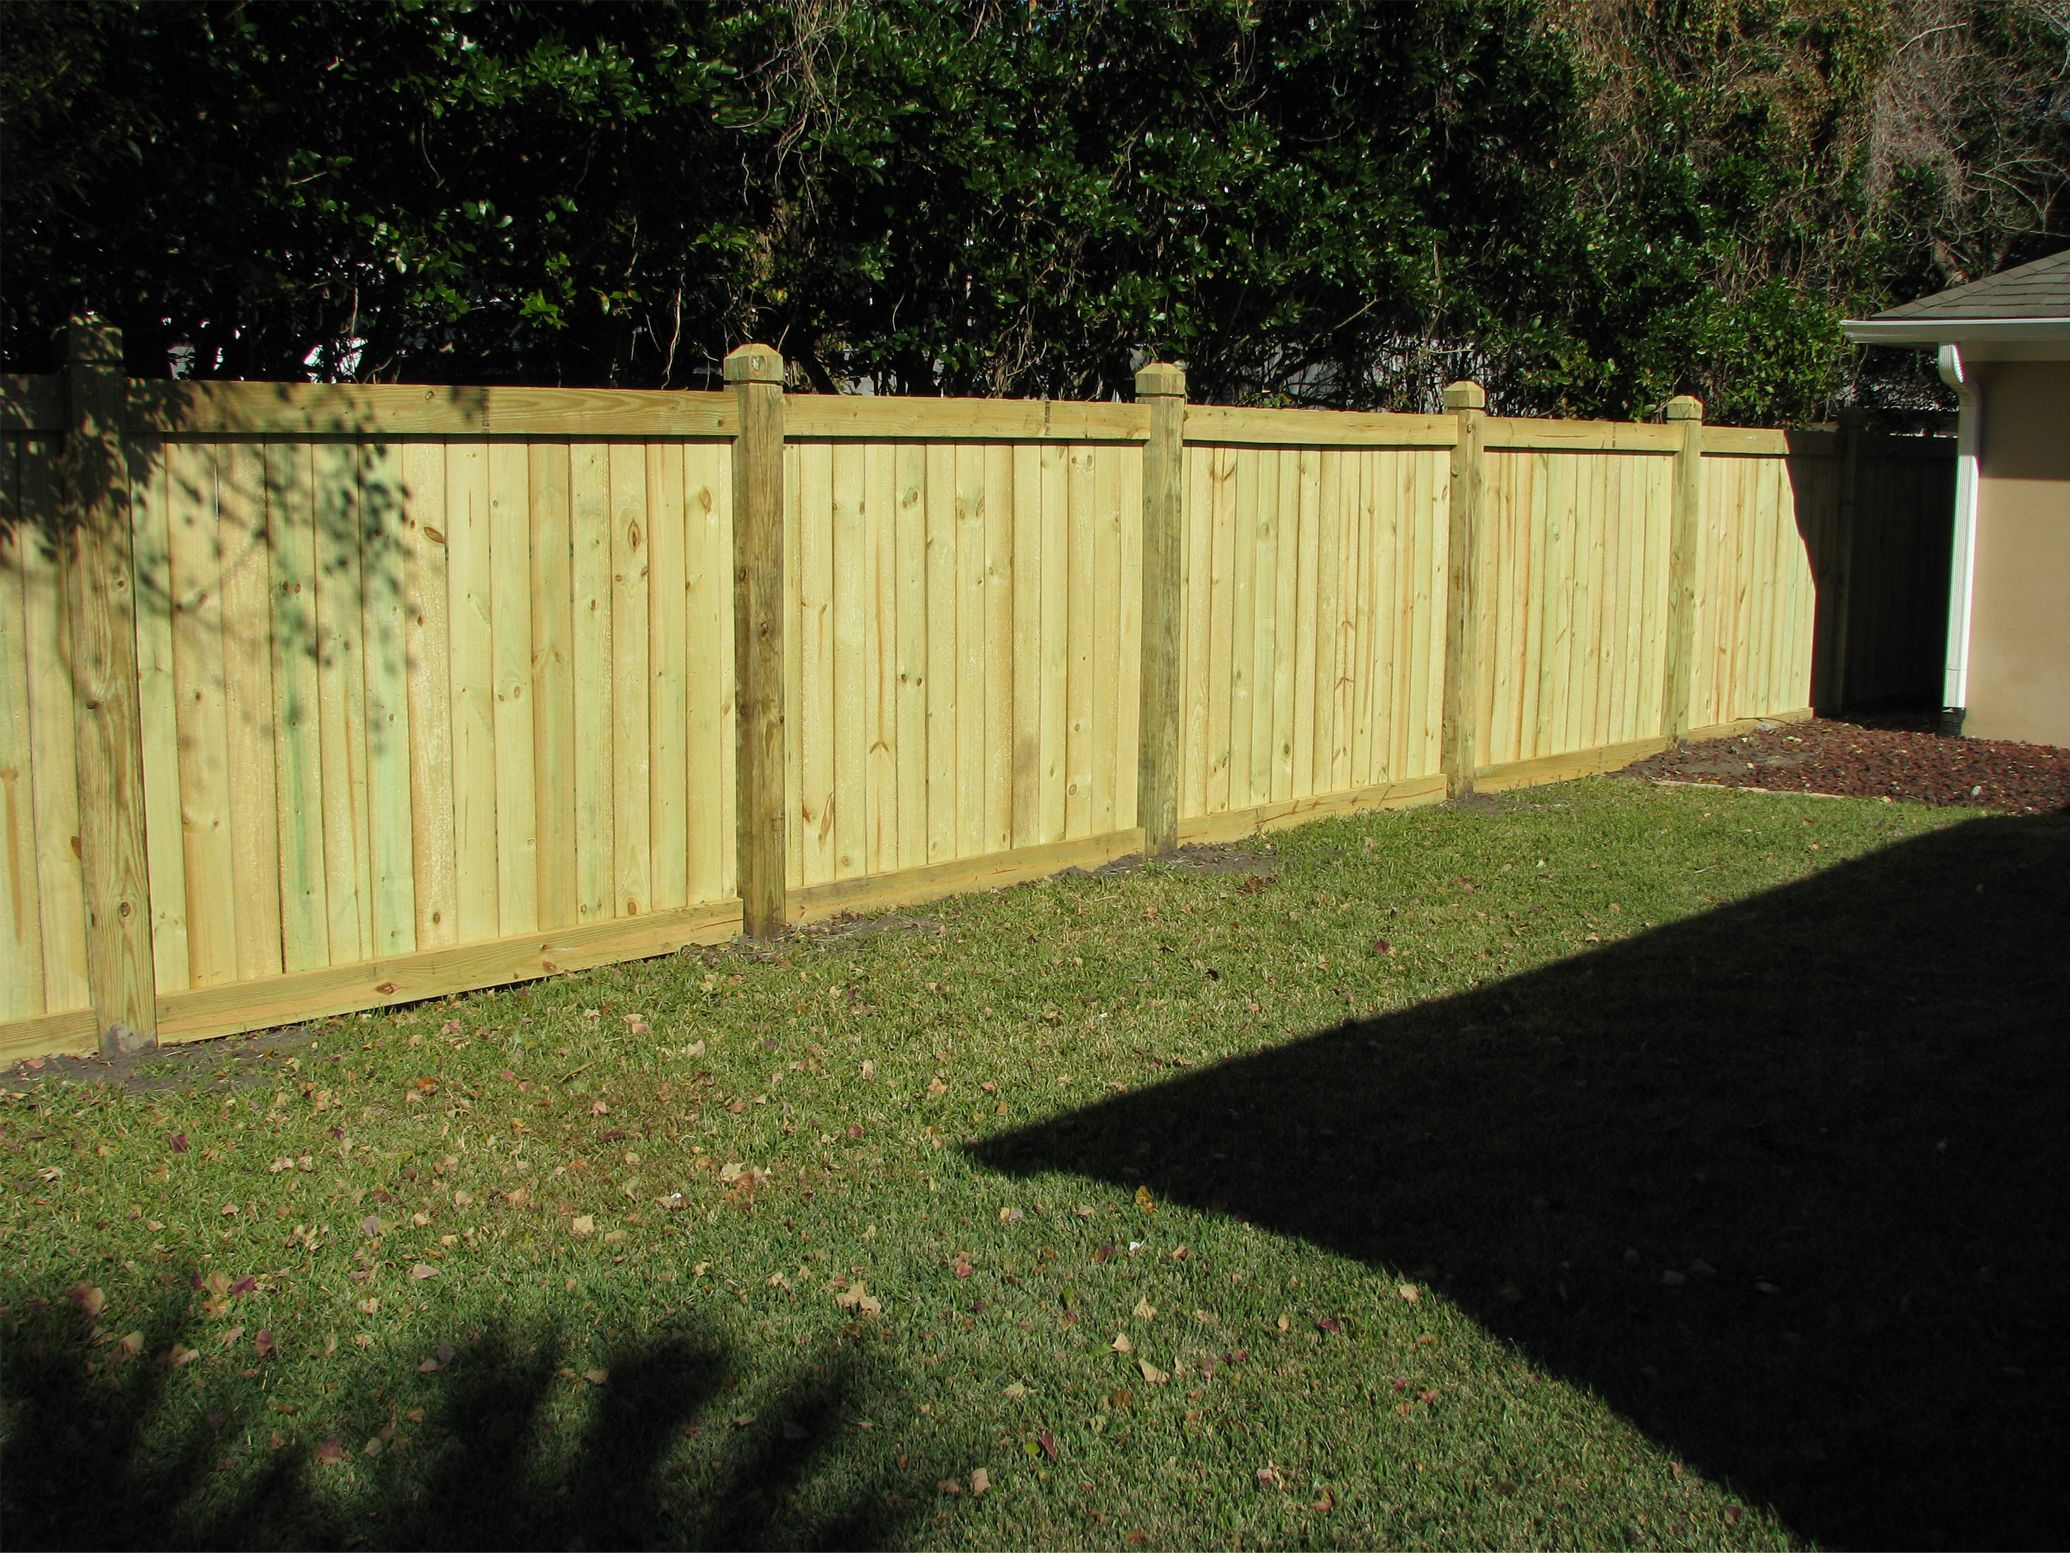 Fence Gate Design Ideas fence design ideas get inspired by photos of fences from australian designers trade professionals Fence Gate Design Ideas By Wooden Astounding Wooden Fence Gate Designs Wood Fence Designs Ideas